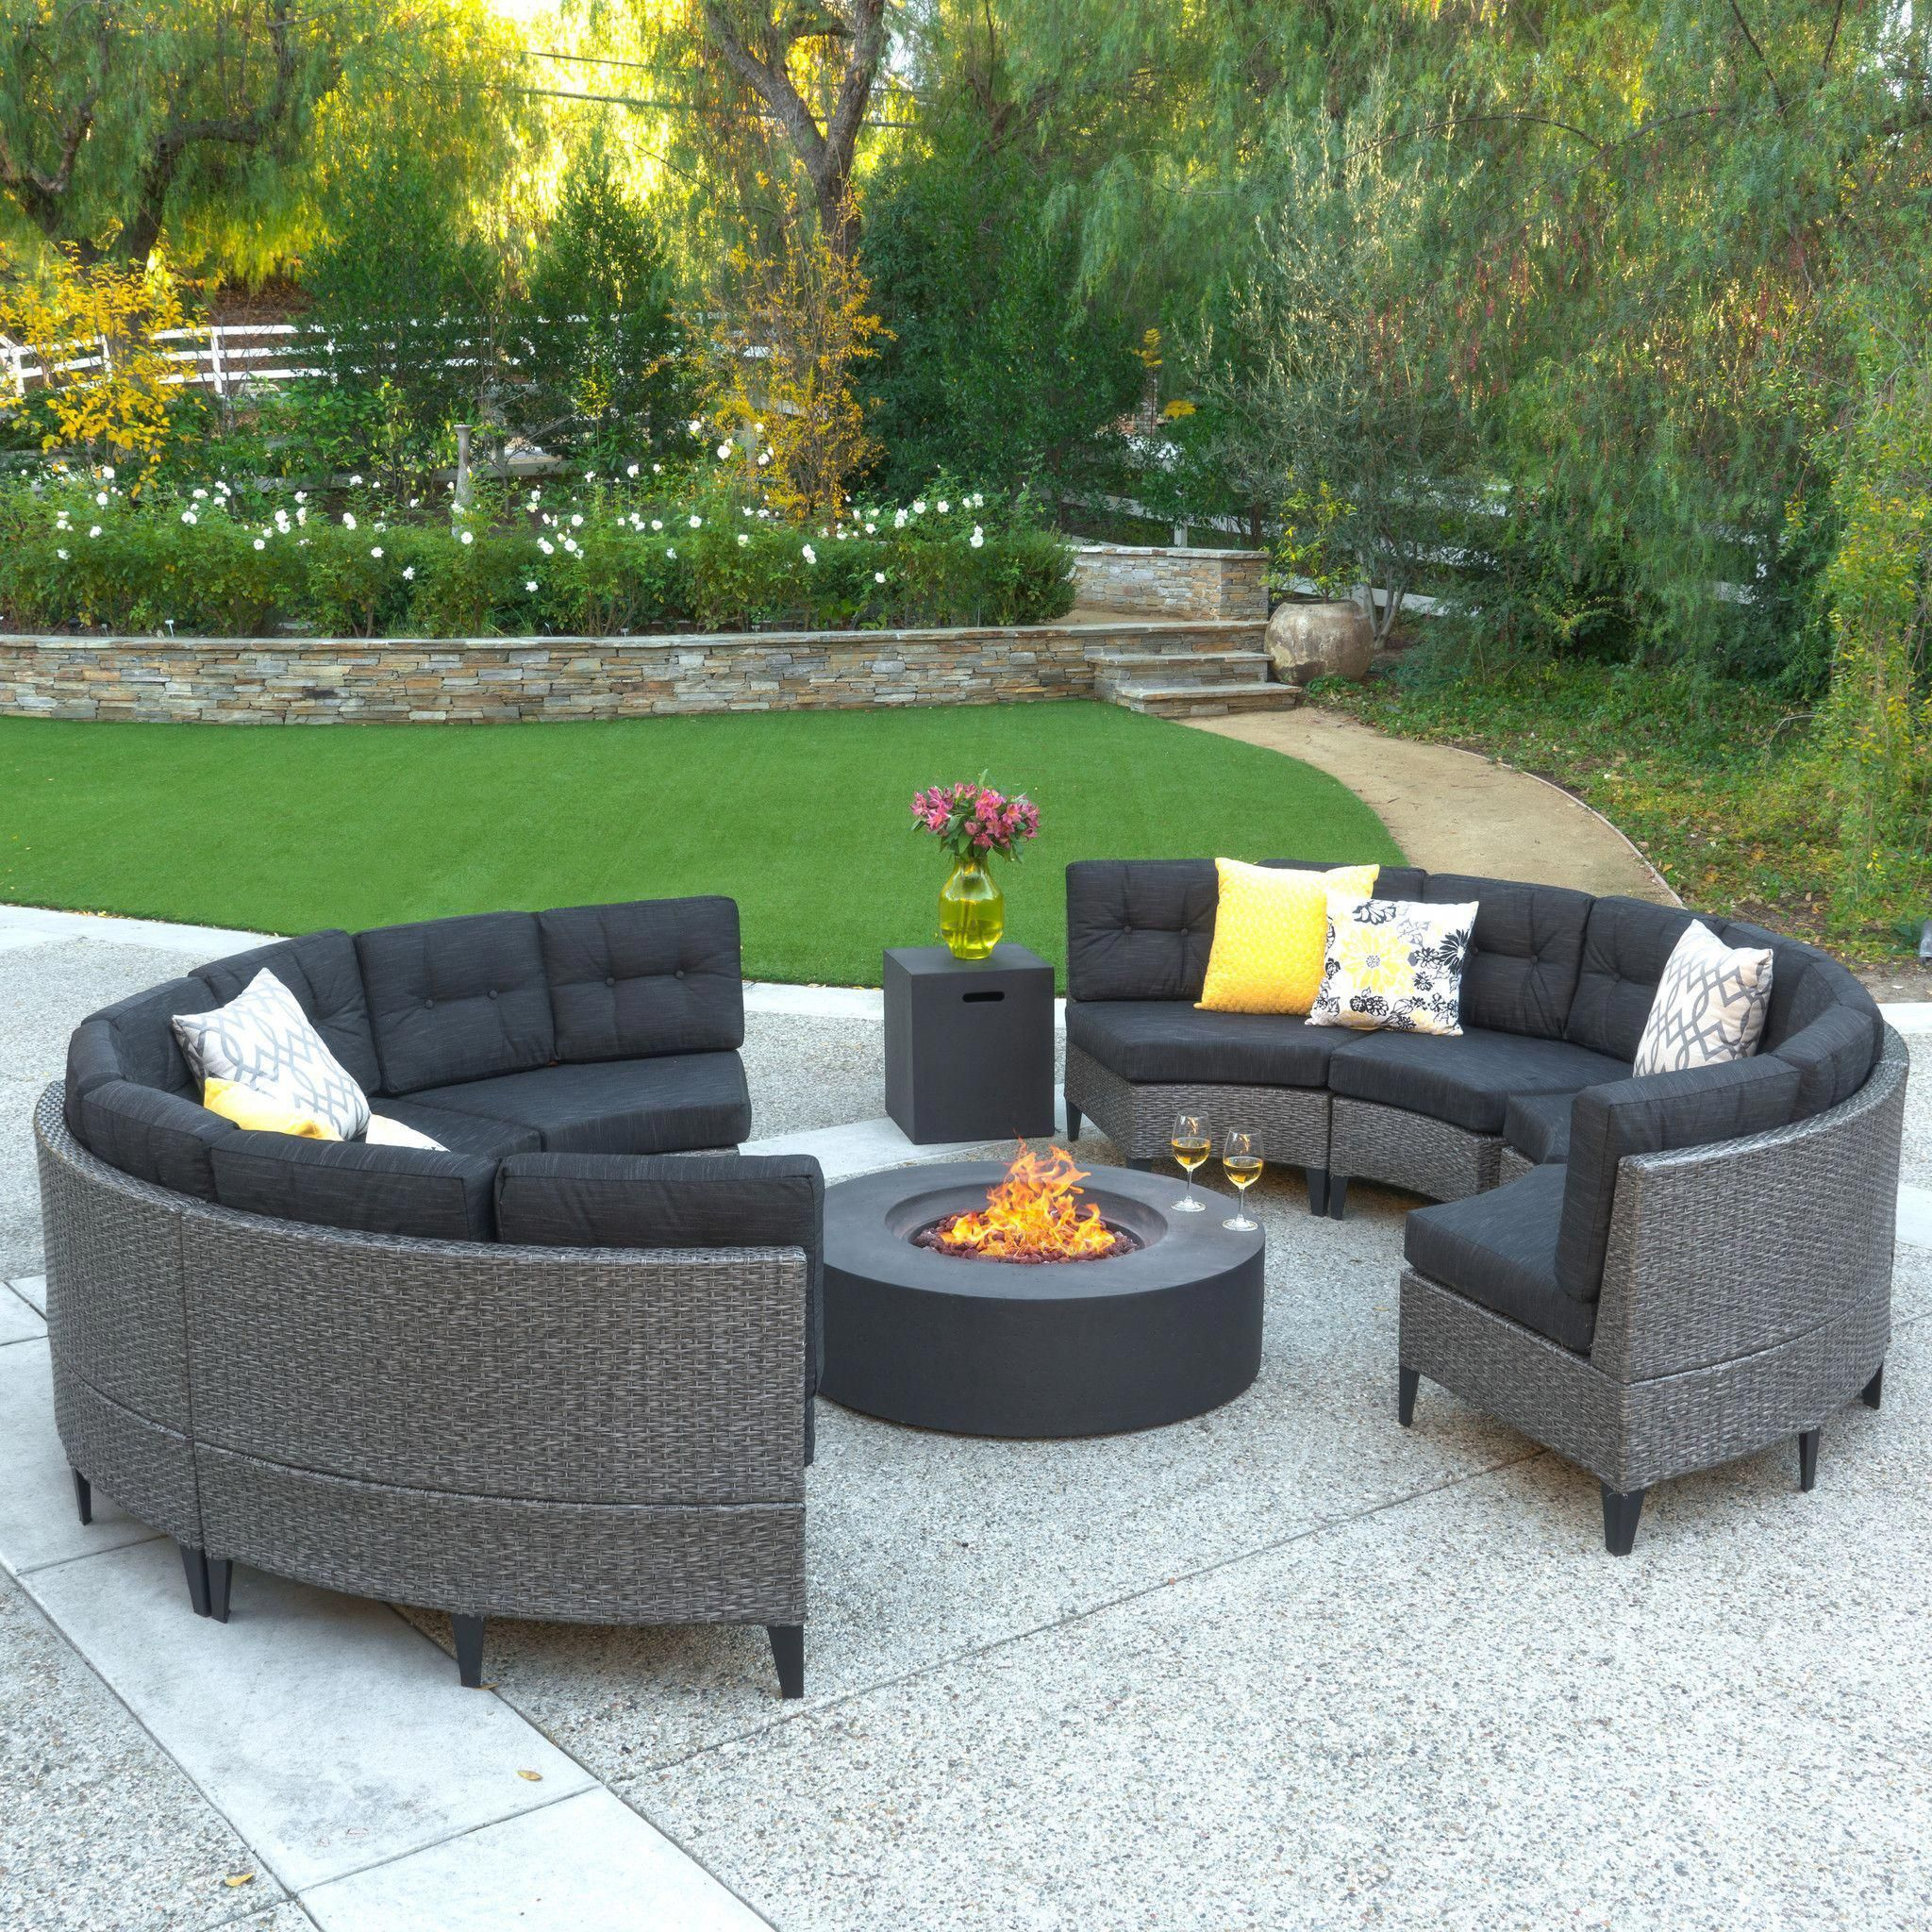 Nessett 10pc Outdoor Fire Pit Sectional Sofa Set Round Sofa